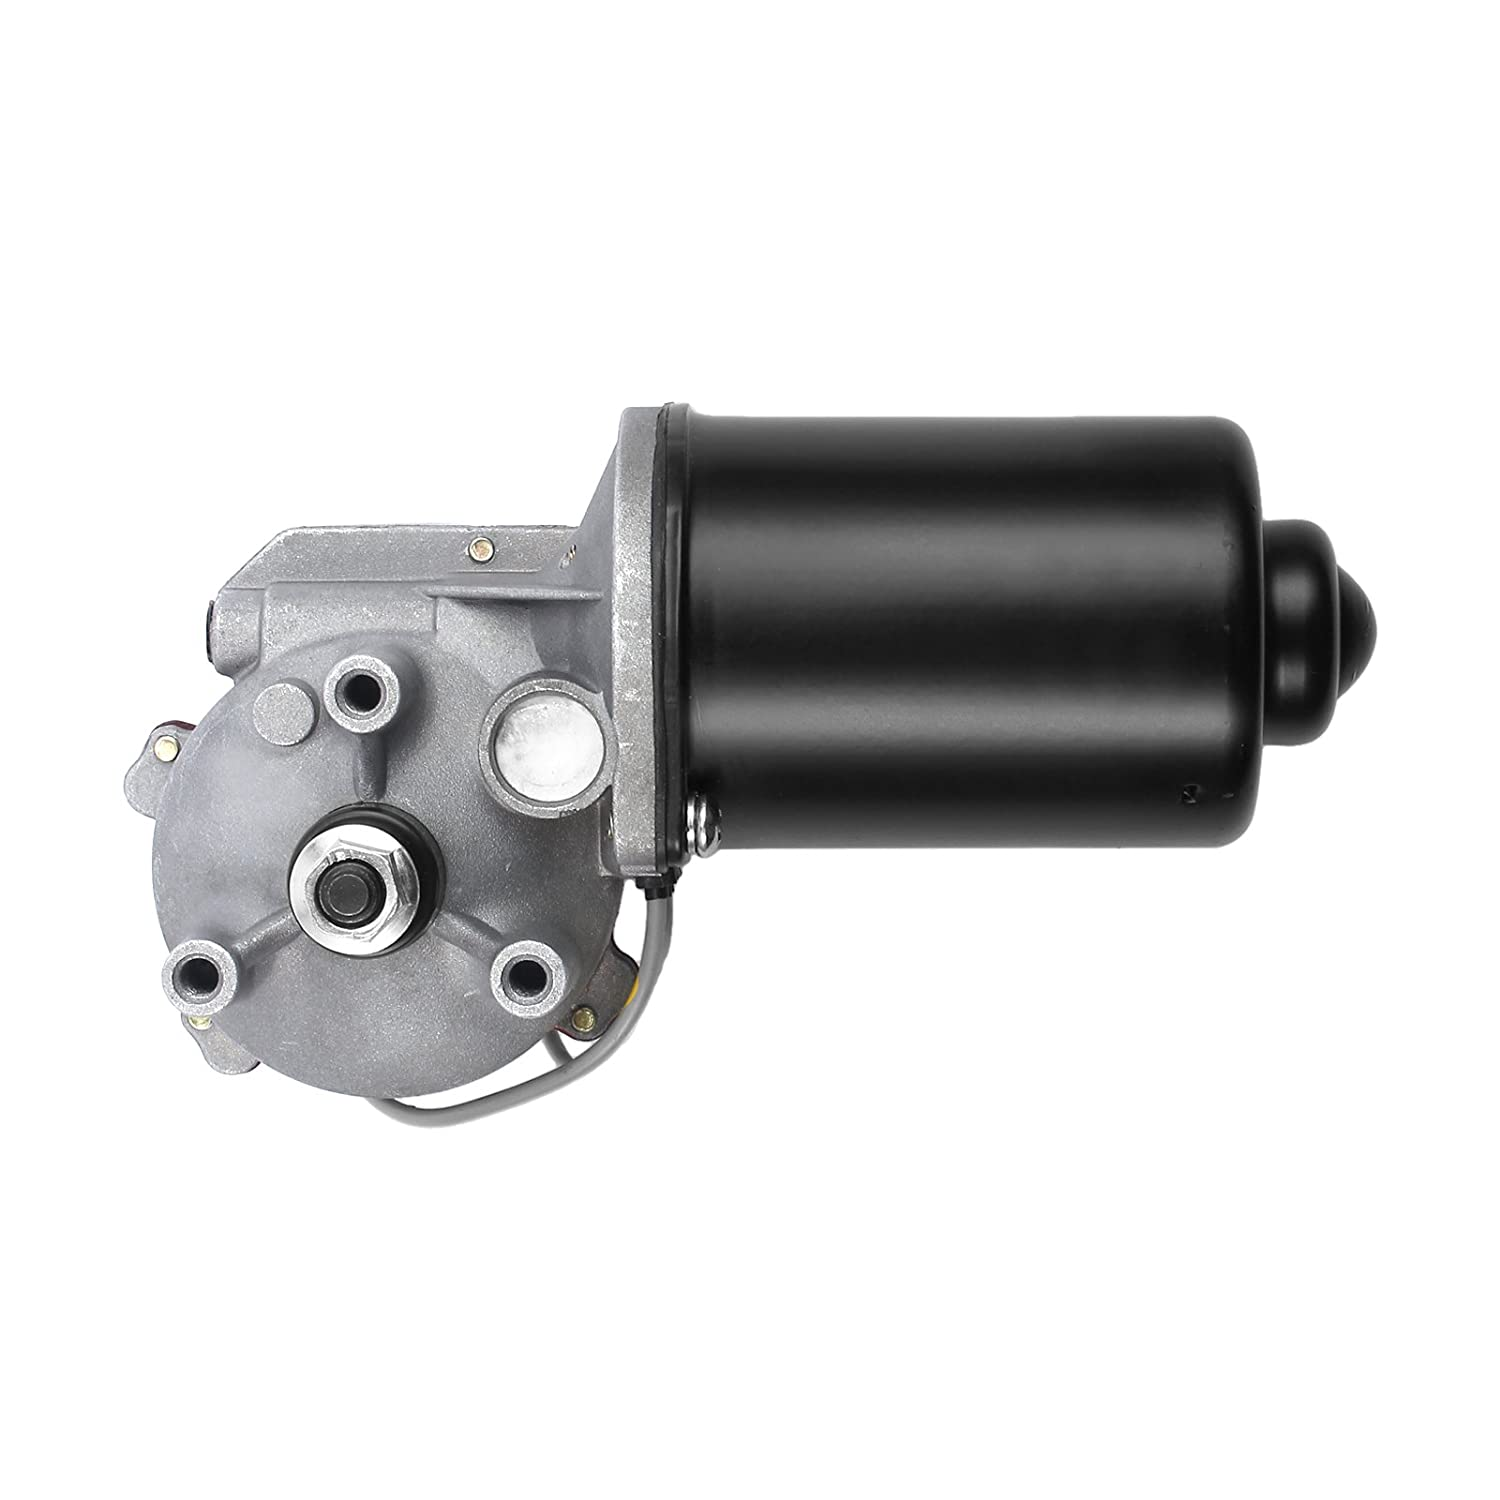 Justech Front Wiper Motor for Vauxhall Combo Corsa Tigra 1270000 23001902 23002751 24441422